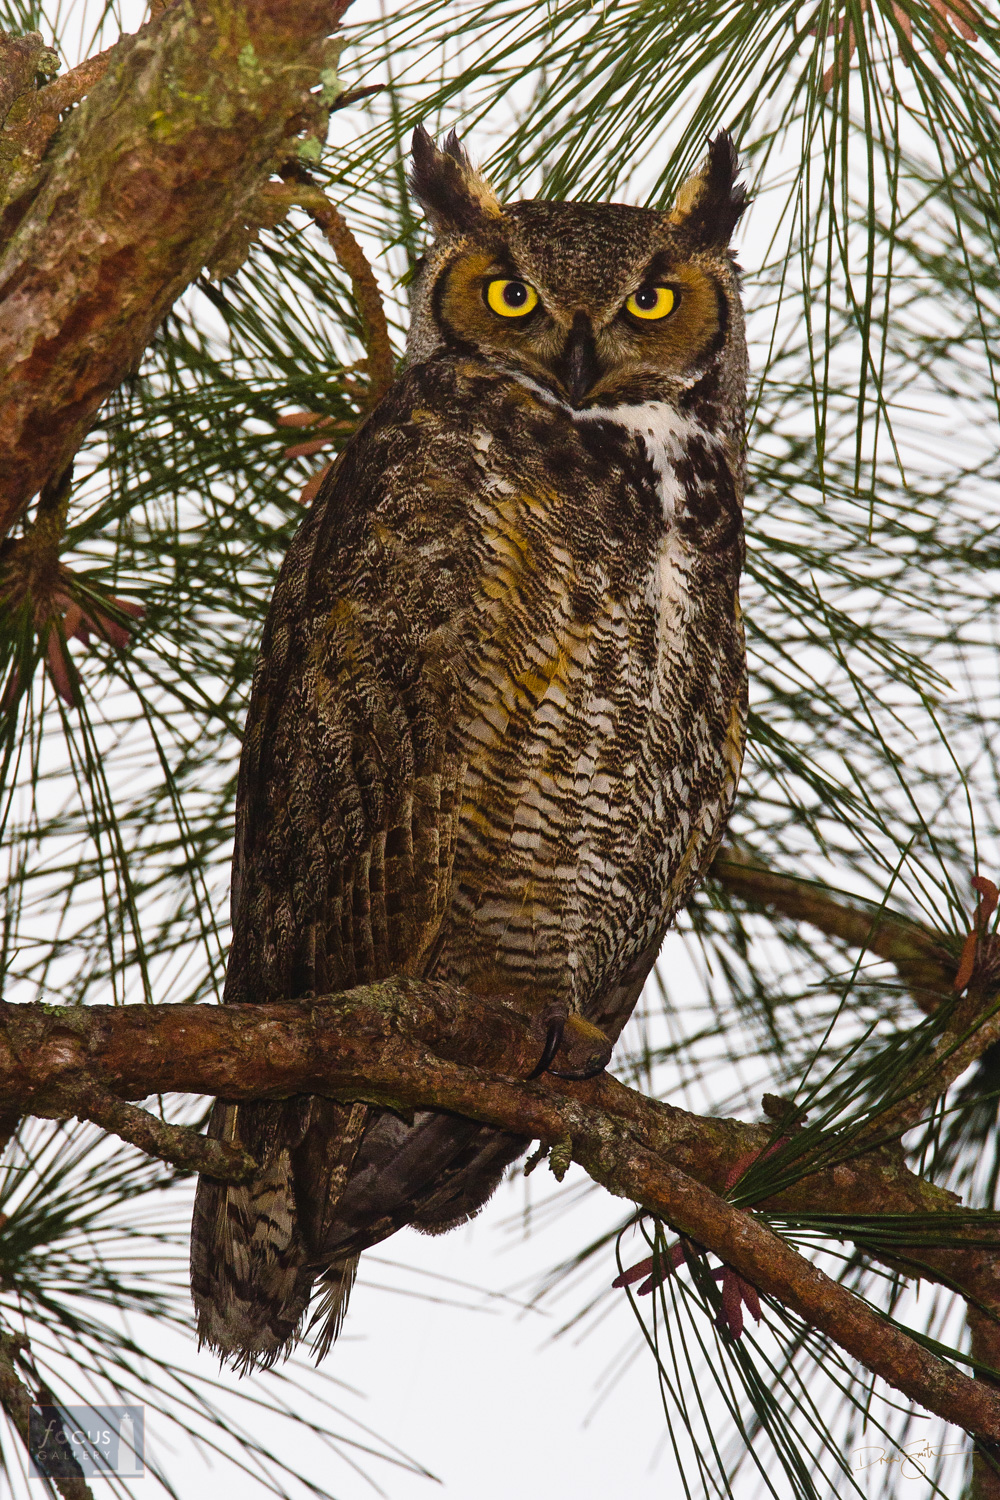 A Great Horned Owl (Bubo virginianus) perched in a pine tree at St. Marks National Wildlife Refuge.